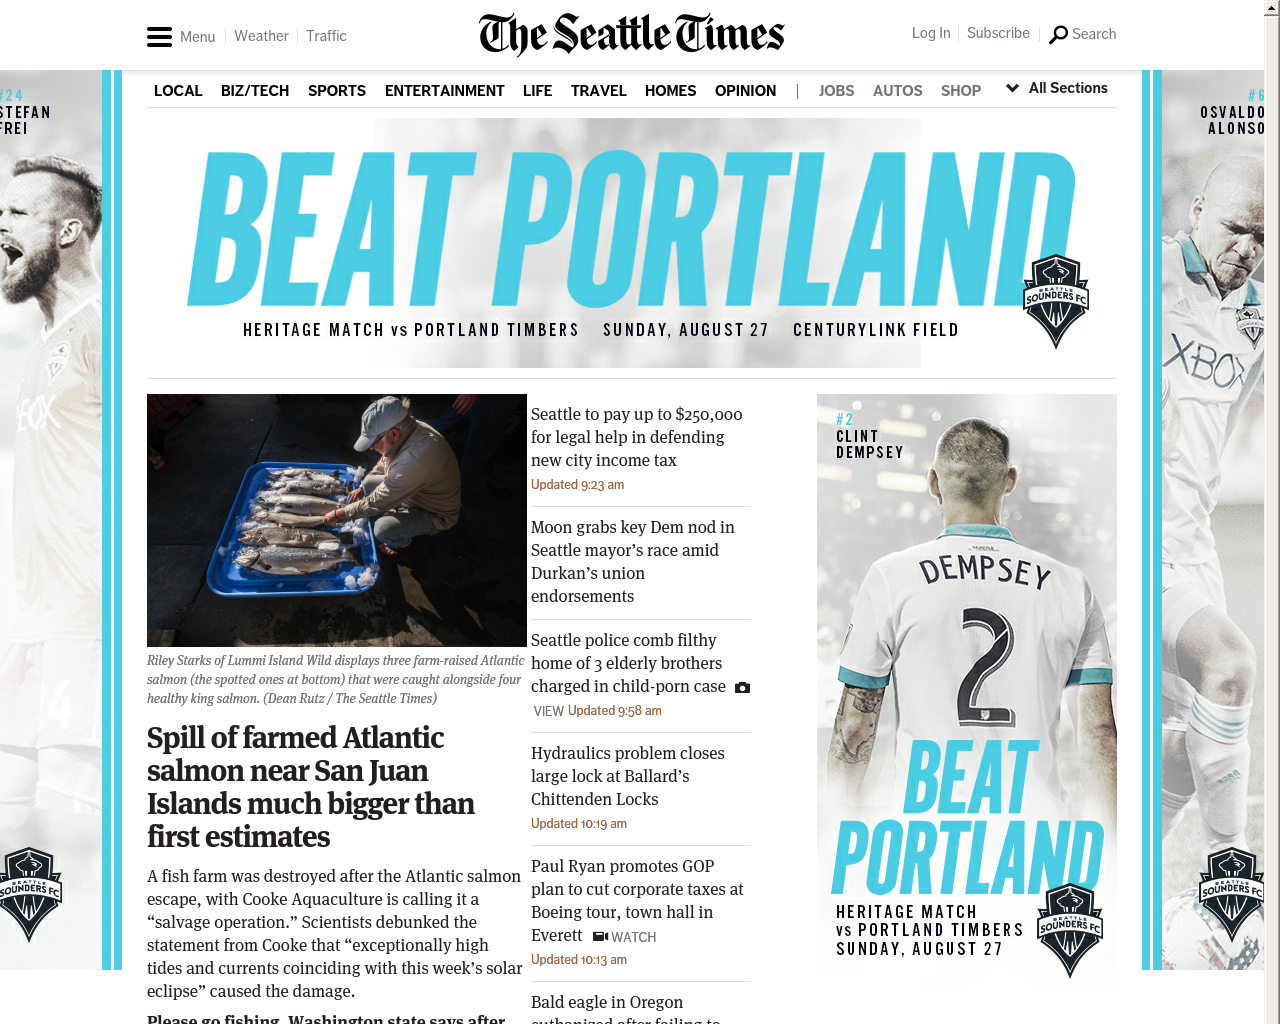 The-Seattle-Times-Advertising-Reviews-Pricing